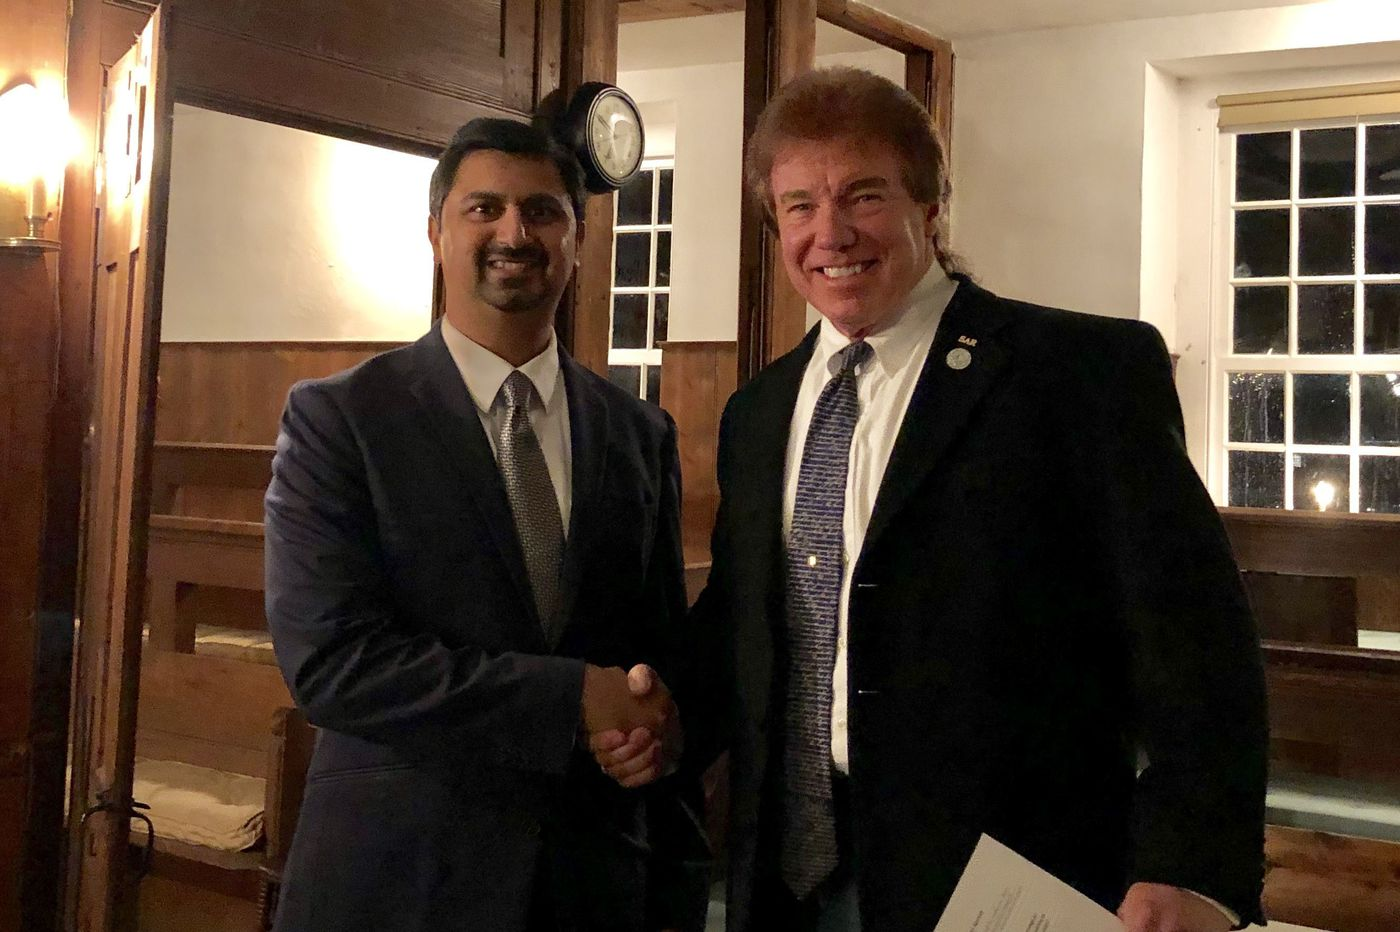 Burlco committeeman apologizes for his comments about Indian immigrants